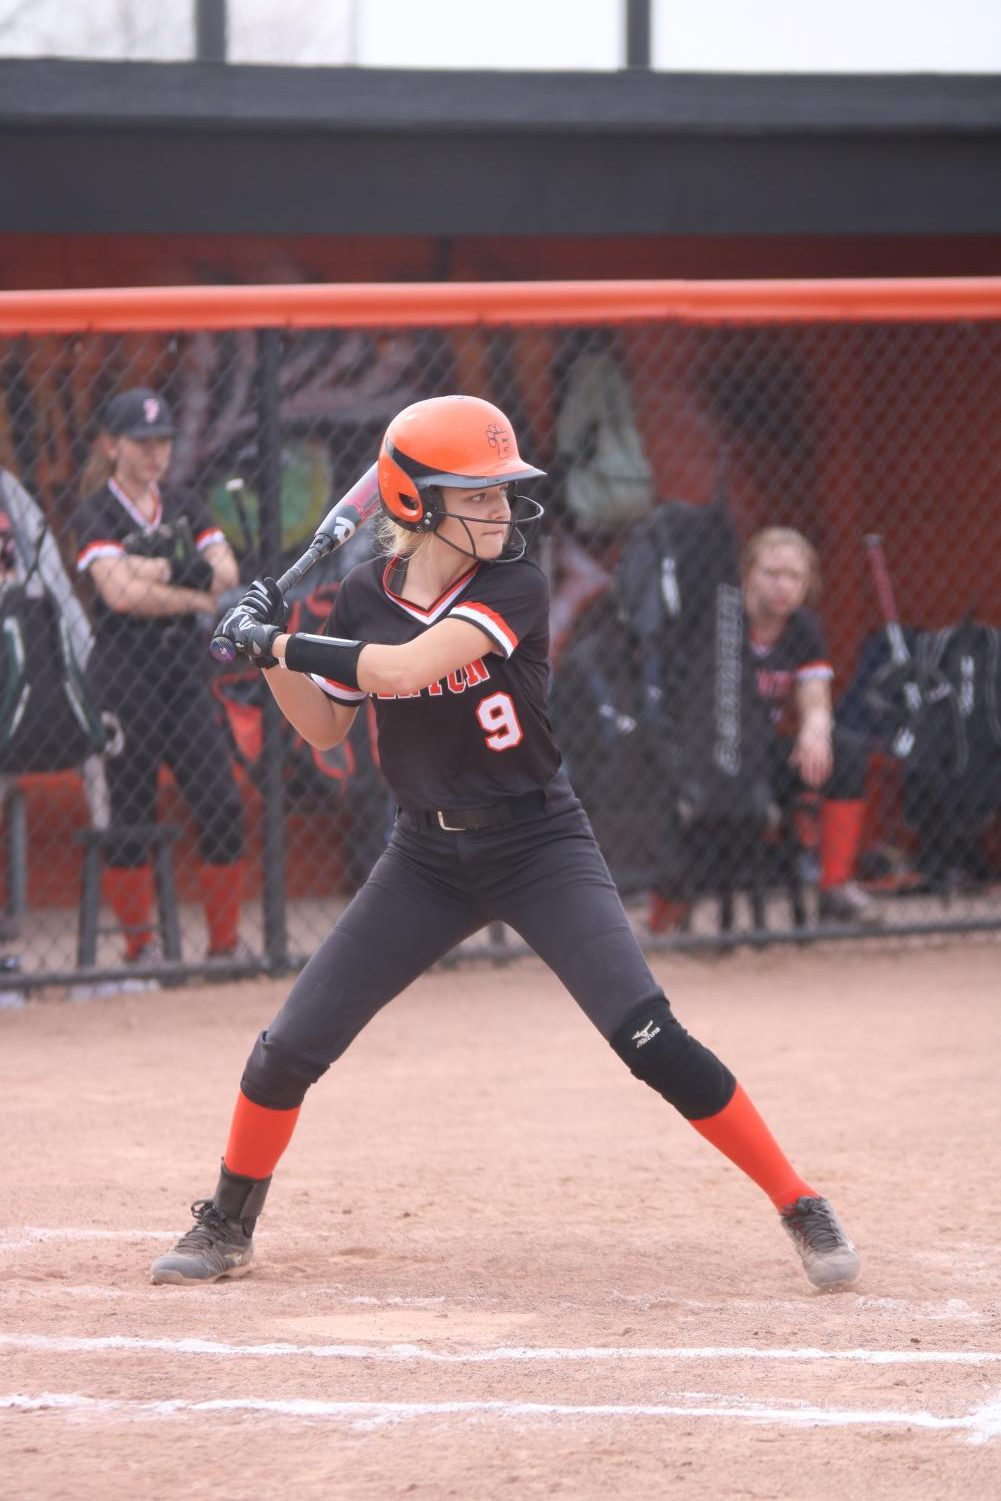 In the beginning of an inning, freshman Jordyn Bommersbach gets ready to bat. The JV softball team played against Swartz Creek on April 25.